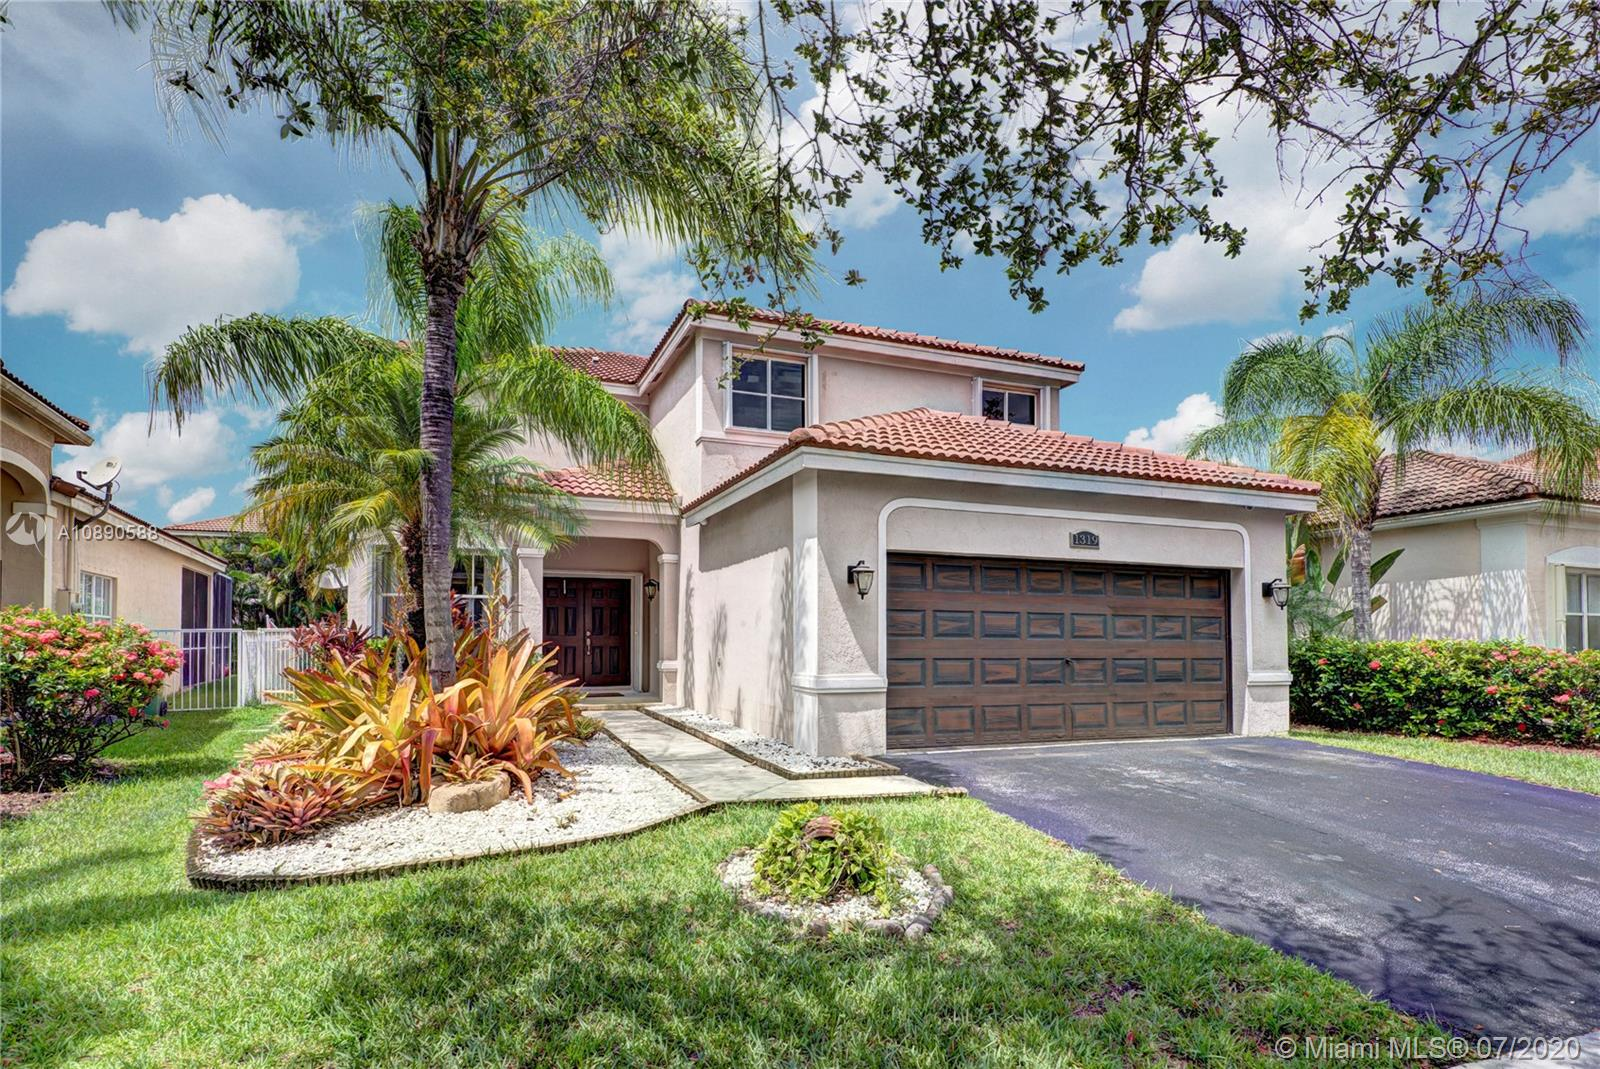 SPECTACULAR AND IMMACULATE 6 BEDROOM, 4.5 BATH HOME IN THE SOUGHT AFTER COMMUNITY OF SAVANNA IN WESTON, FL. THIS HOME FEATURES, NEW NEUTRAL TILE DOWNSTAIRS, LAMINATE FLOORING ON STAIRS AND SECOND FLOOR, RENOVATED KITCHEN, SS APPLIANCES (3 YRS OLD), FLAT FINISH CEILINGS DOWNSTAIRS AND CROWN MOULDING THROUGHOUT THE HOME, CUSTOM BASEBOARDS, ALL 4.5 BATHROOMS COMPLETELY RENOVATED WITH CUSTOM CABINETRY, SINKS AND TILED SHOWERS. SPACIOUS MAIN BEDROOM FEATURING  CUSTOM BUILT WALK IN CLOSETS. FRESHLY RENOVATED BACK YARD, WITH PAVE STONE FLOORING AND ROOM FOR A POOL. NEWER AC AND WATER HEATER. NEW ACCORDION SHUTTERS AND SO MUCH MORE… CLOSE TO SHOPPING, CLEVELAND CLINIC, HIGHWAYS TO AIRPORT, AND TOP SCHOOLS!